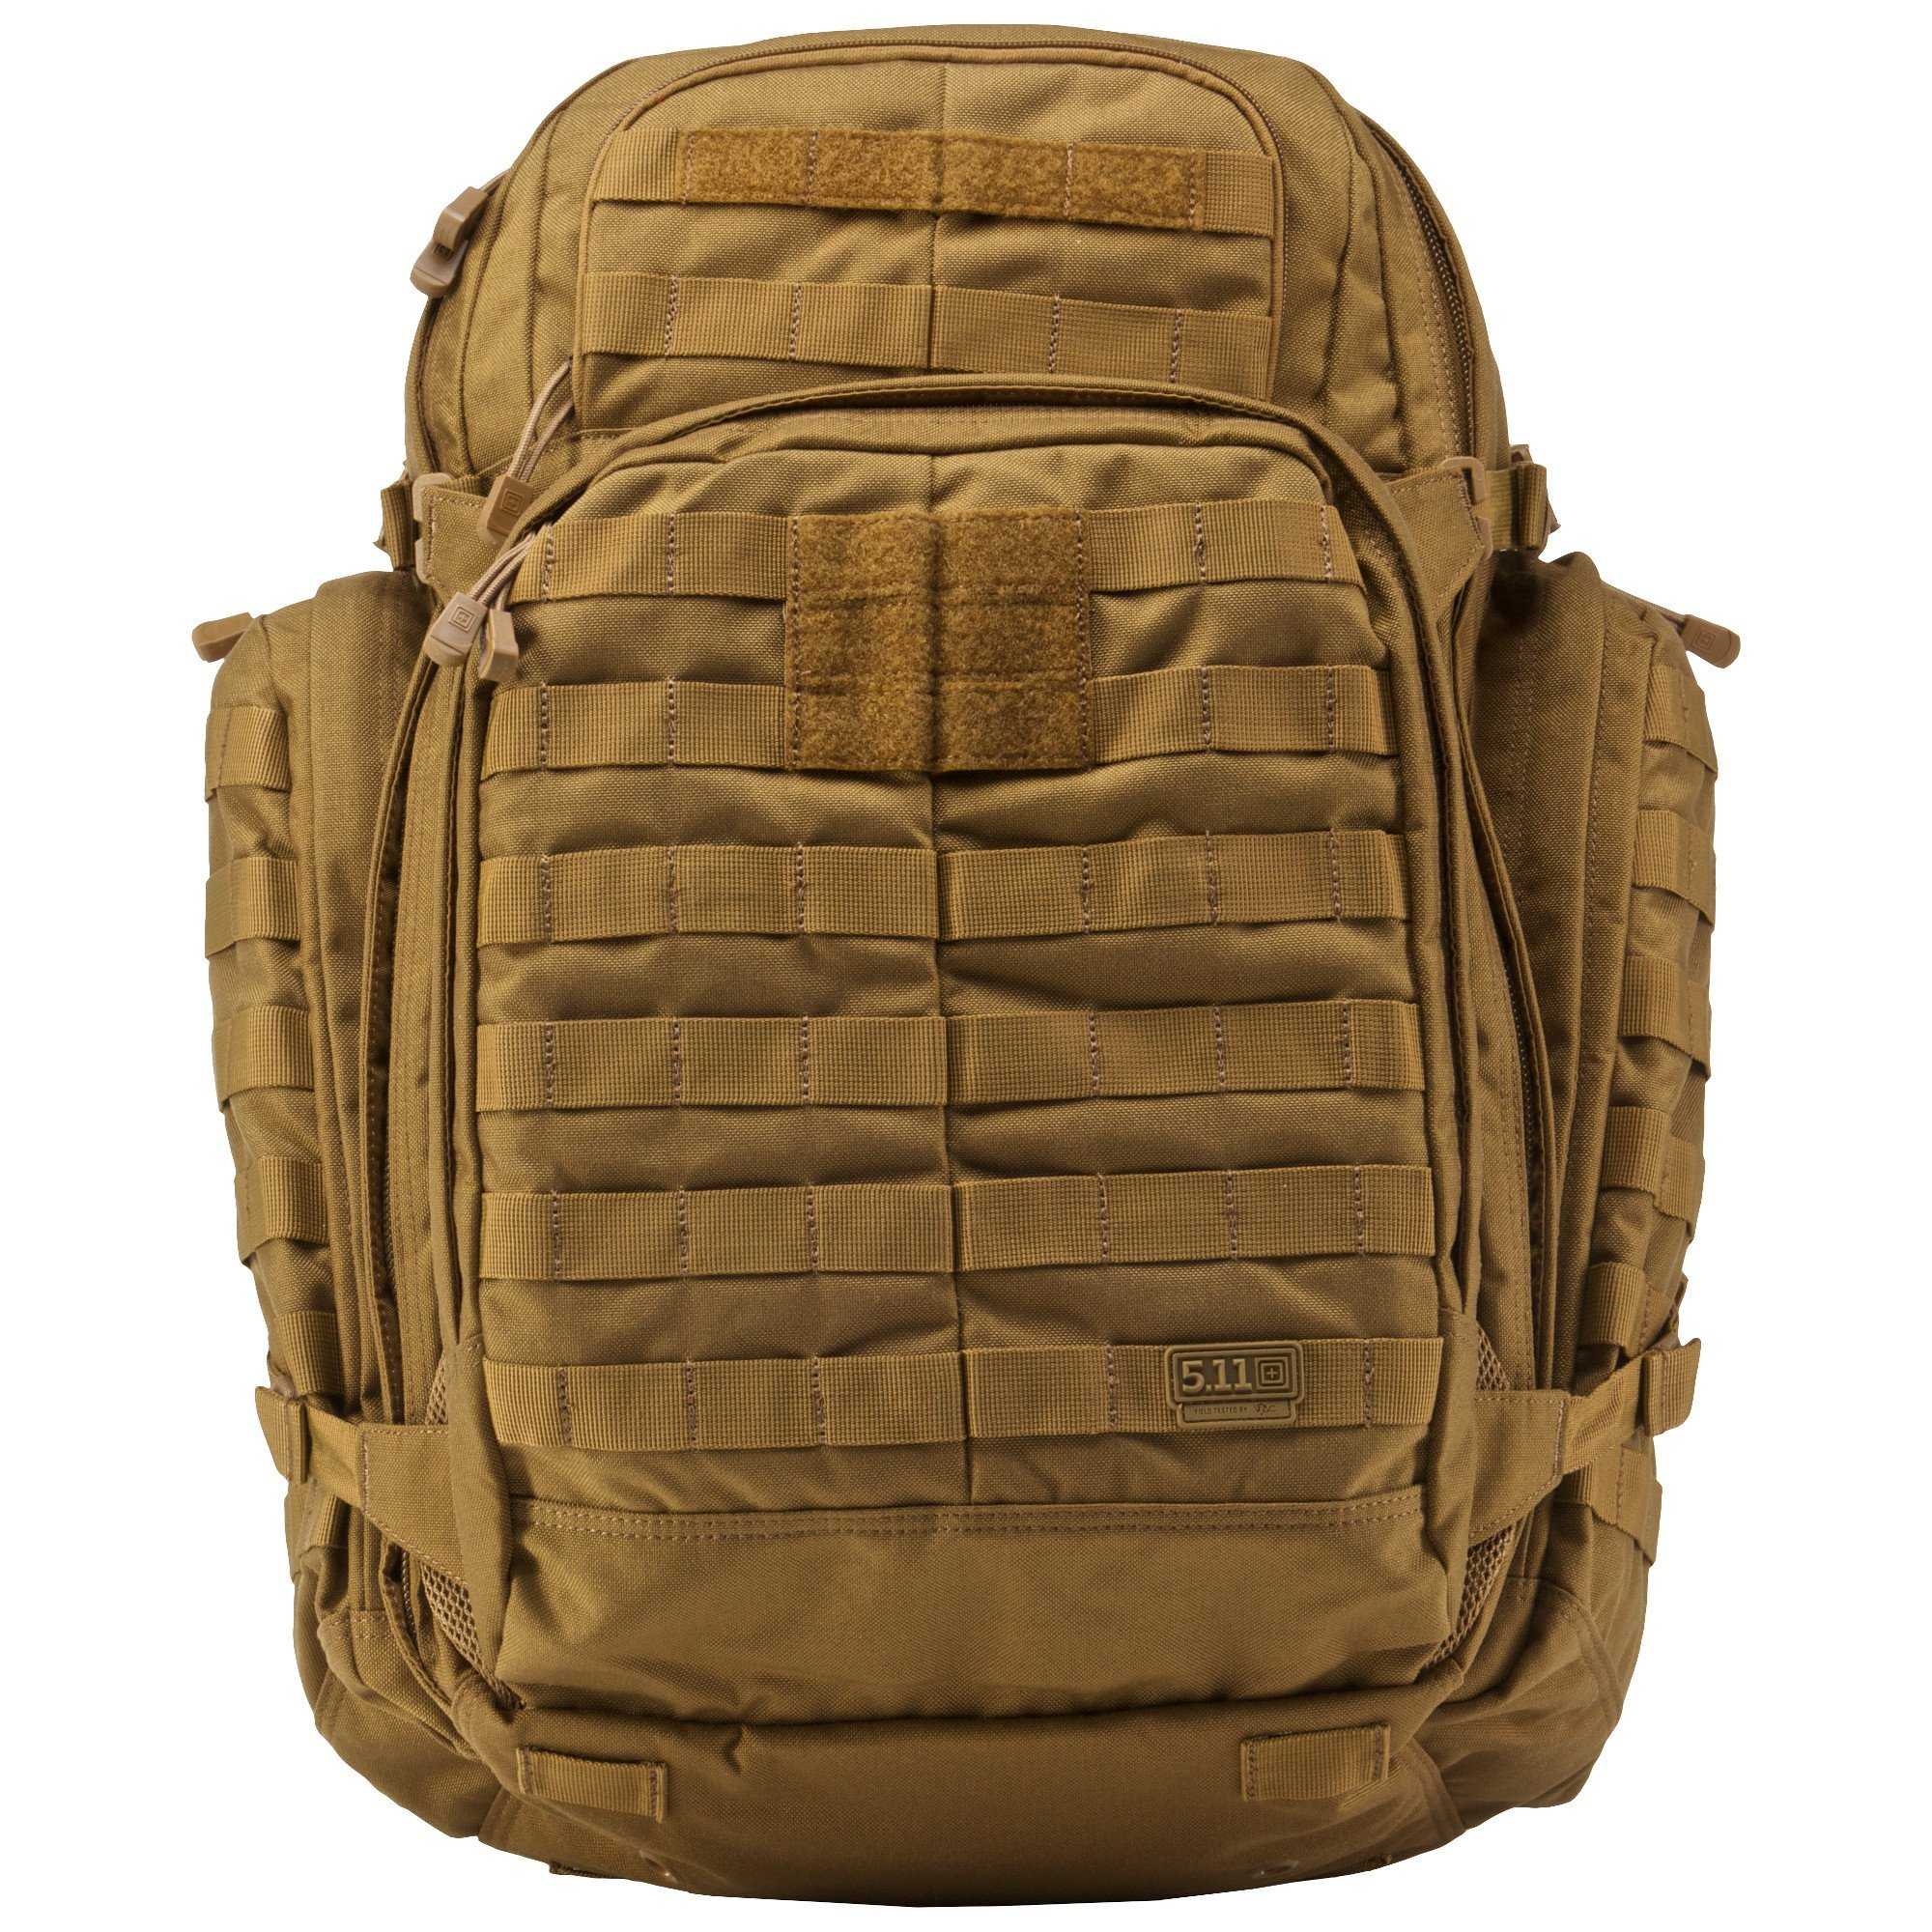 5.11 RUSH72 Tactical Backpack for Military, Bug Out Bag, Molle Pack, Large, Style 58602, Flat Dark Earth by 5.11